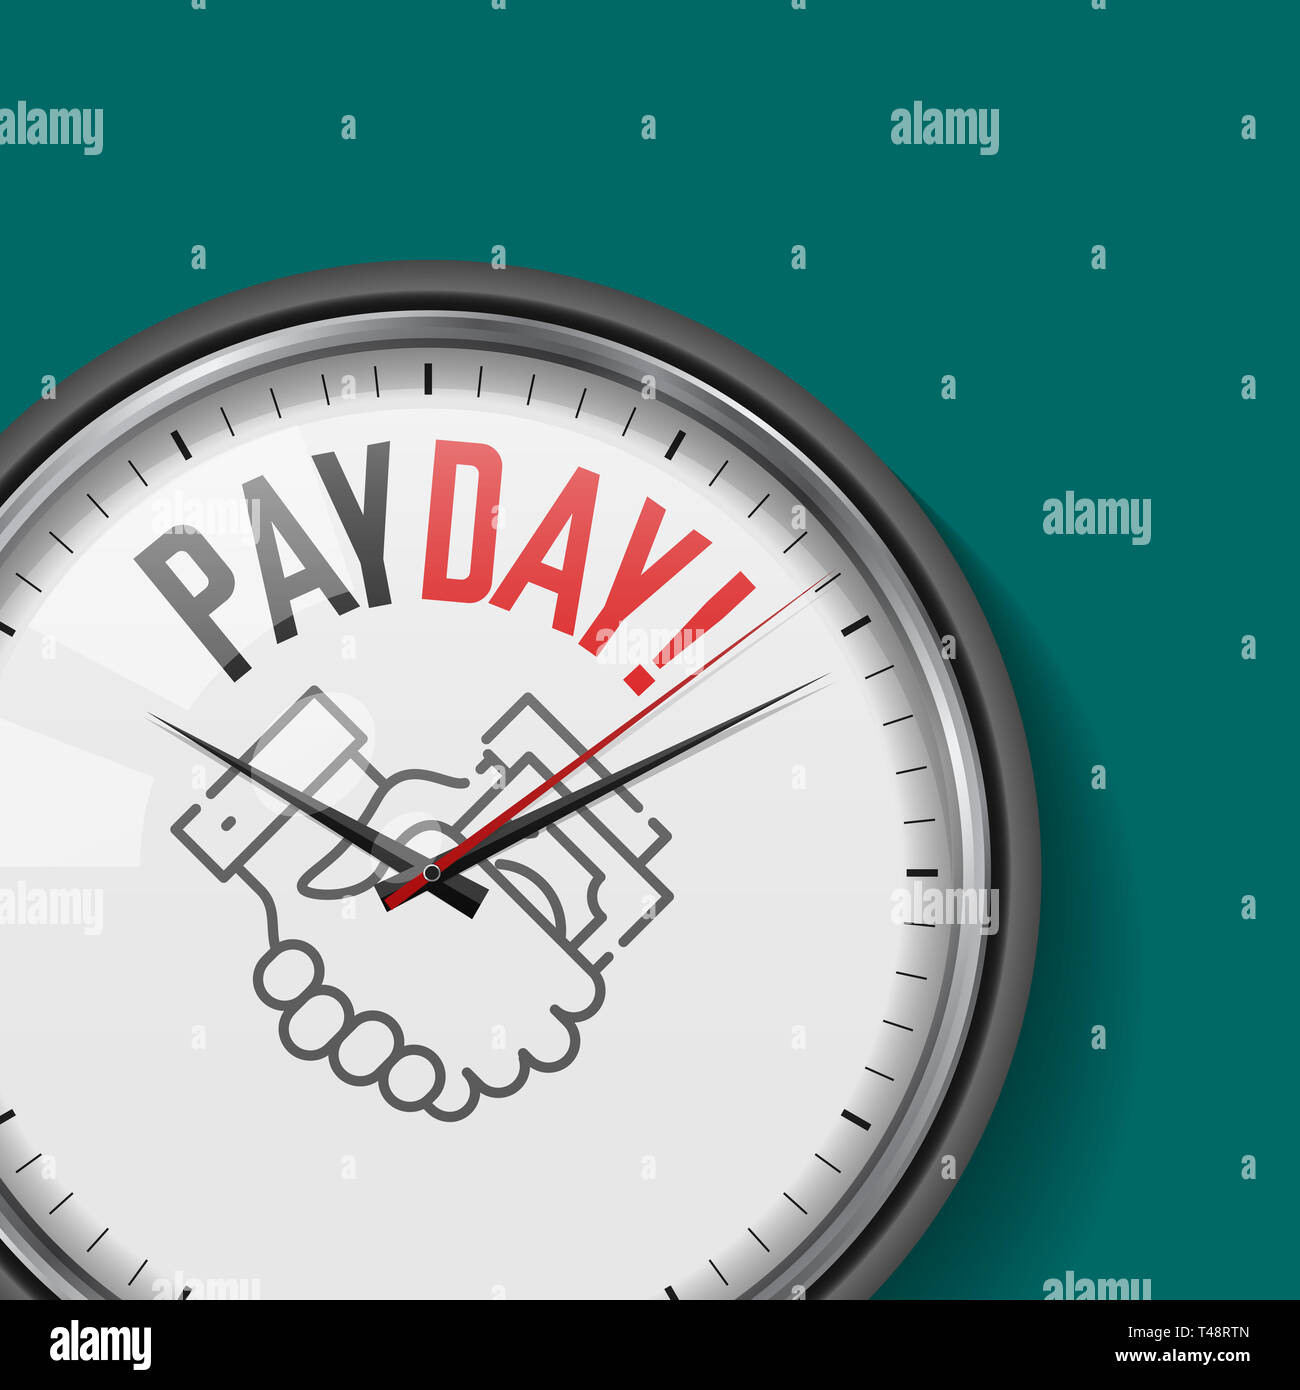 Payday Time. White Clock with Motivational Slogan. Analog Metal Watch with Glass. Illustration Isolated on Solid Color Background. Money Transfer Icon Stock Photo